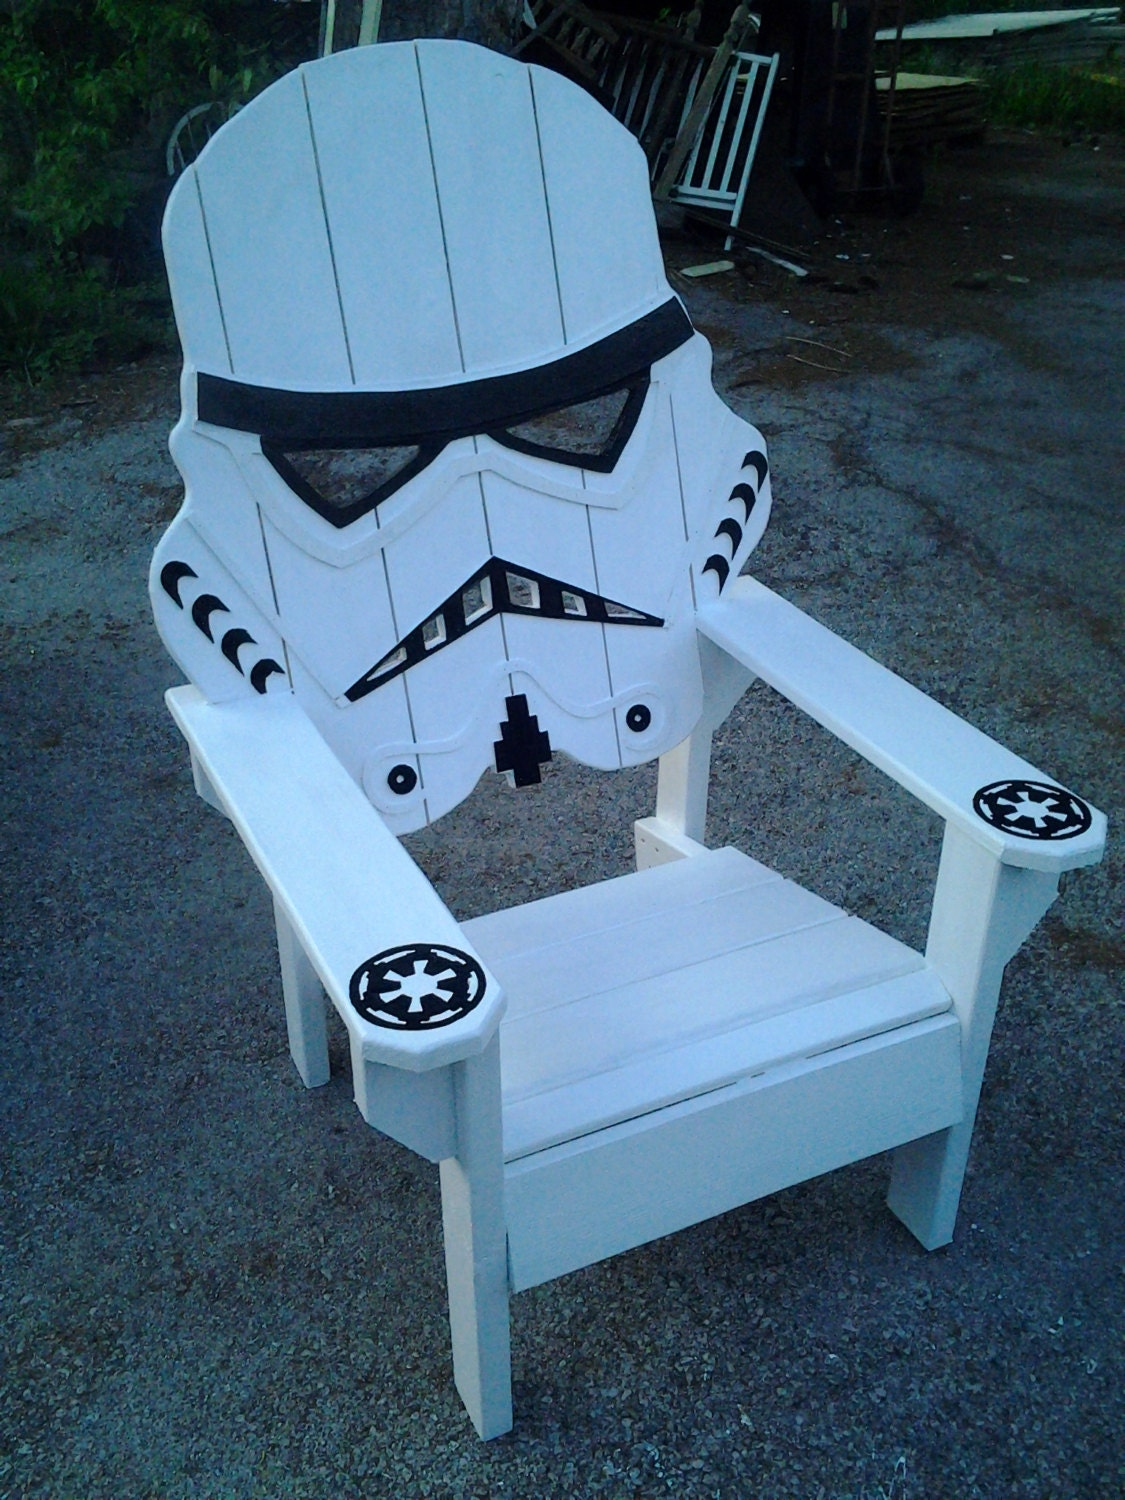 Wood Skull Lawn Chairs ~ Star wars storm trooper chairadirondack chair yard